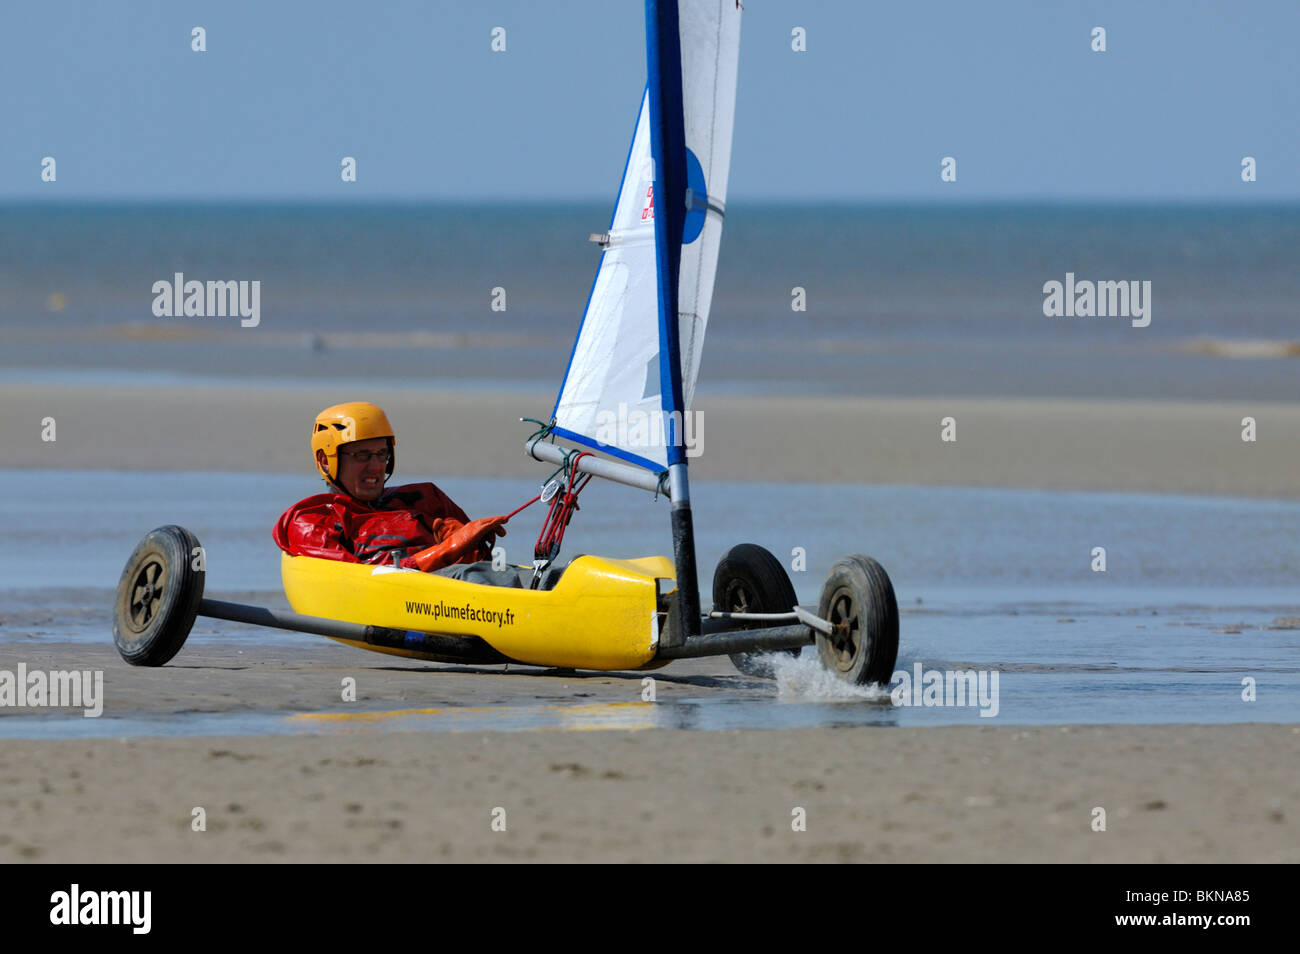 Land sailing / sand yachting / land yachting on the beach at De Panne, Belgium - Stock Image